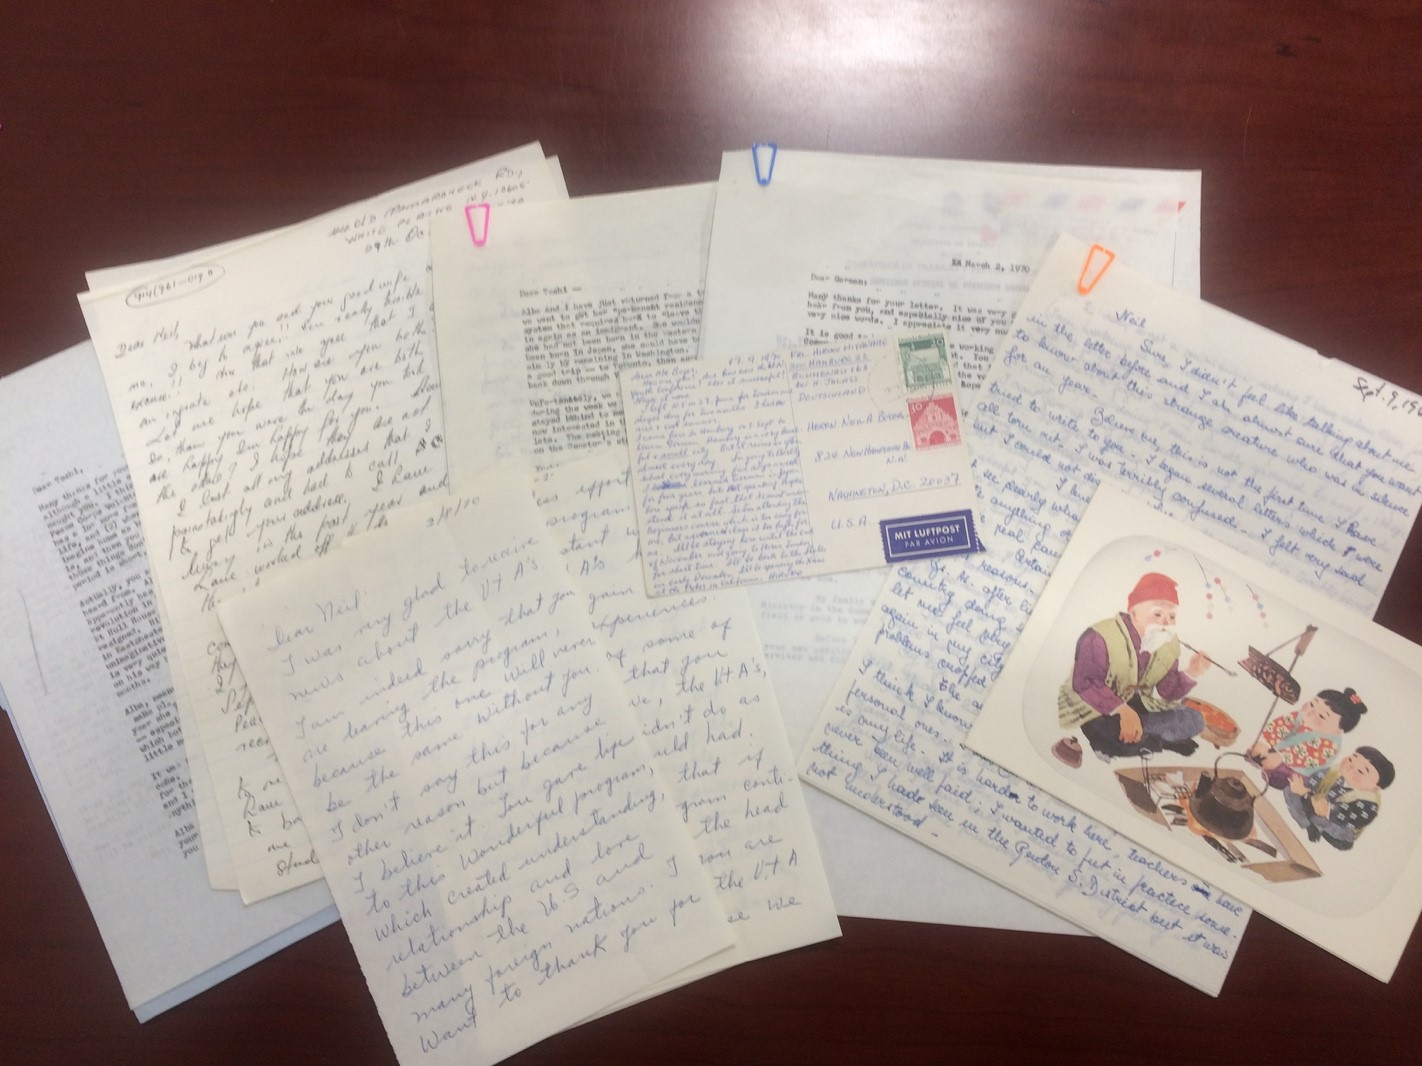 Various letters, postcards, and airmail scattered on a table.